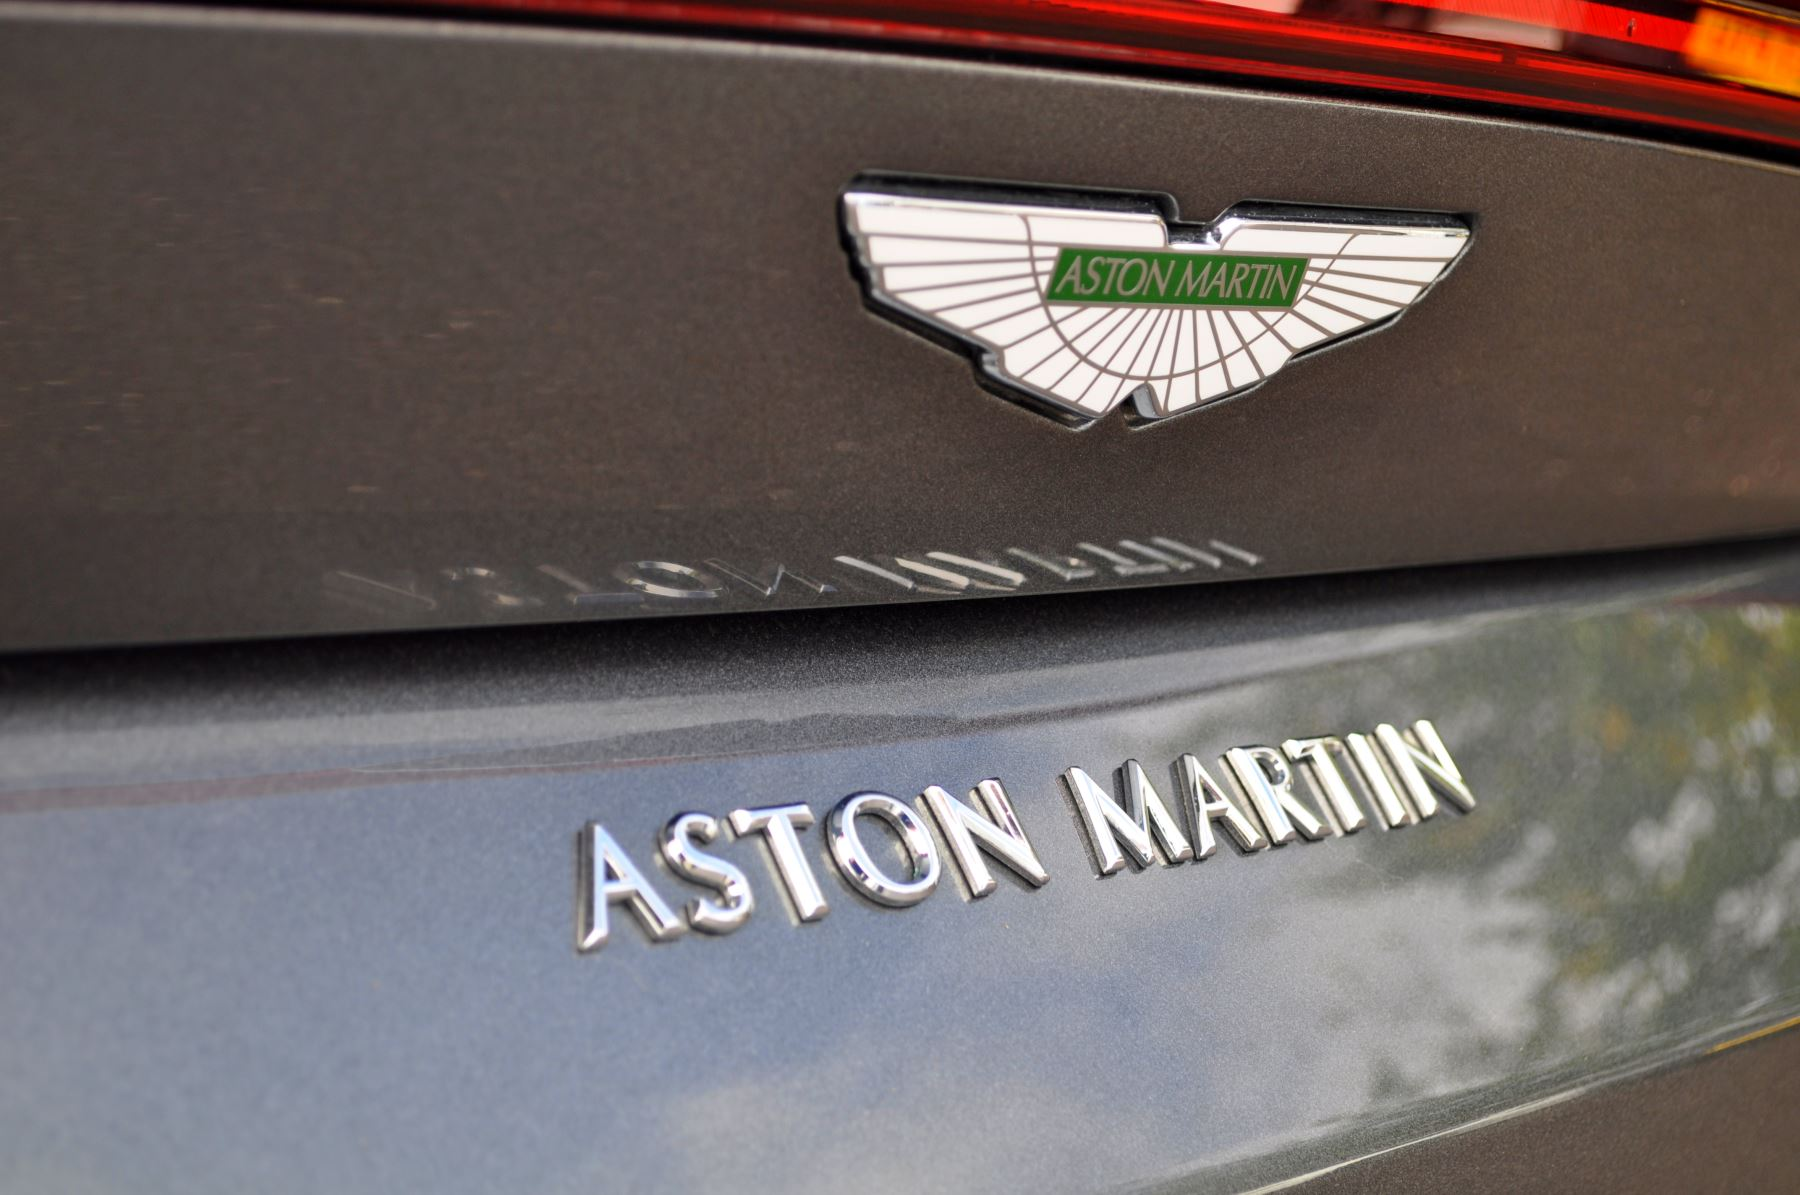 Aston Martin New Vantage 2dr ZF 8 Speed image 13